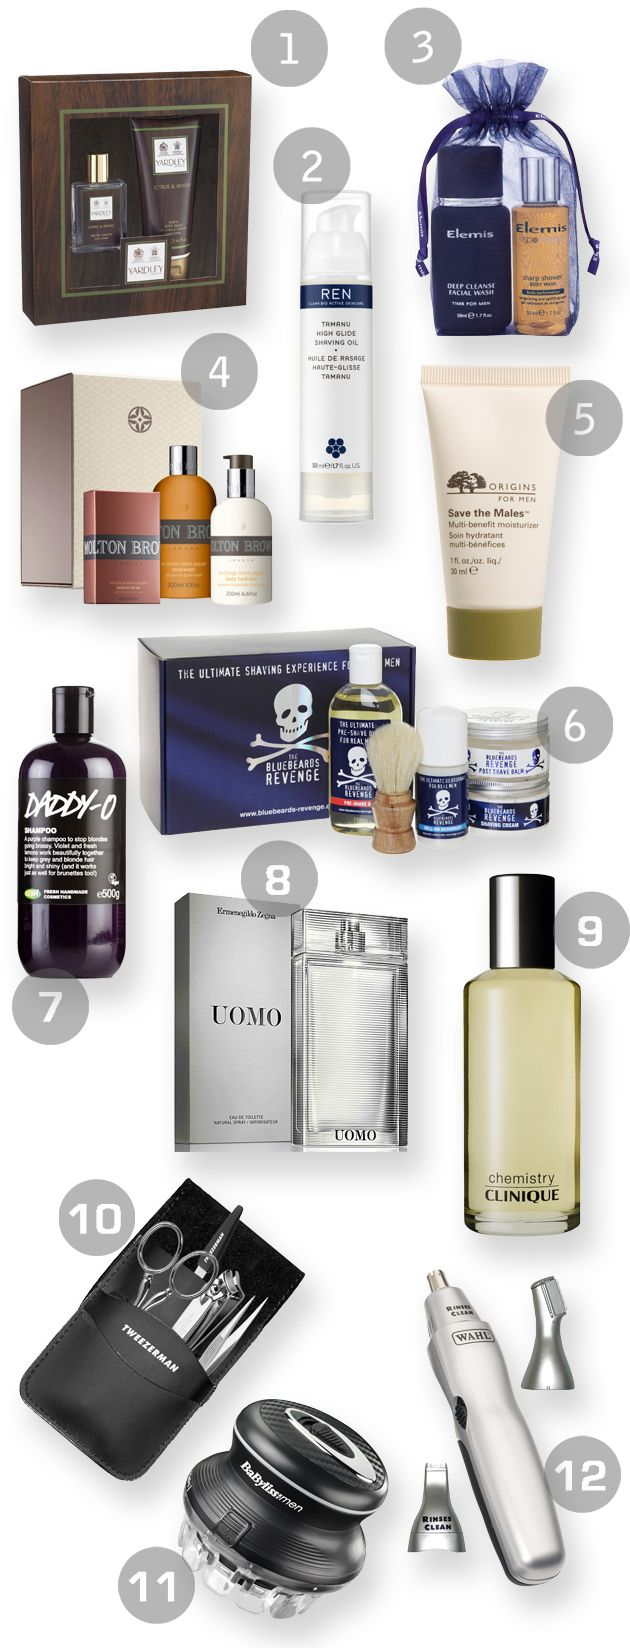 male grooming gifts! 19 days left before Christmas. ..we love the idea at Www.justfrenchstyle.com